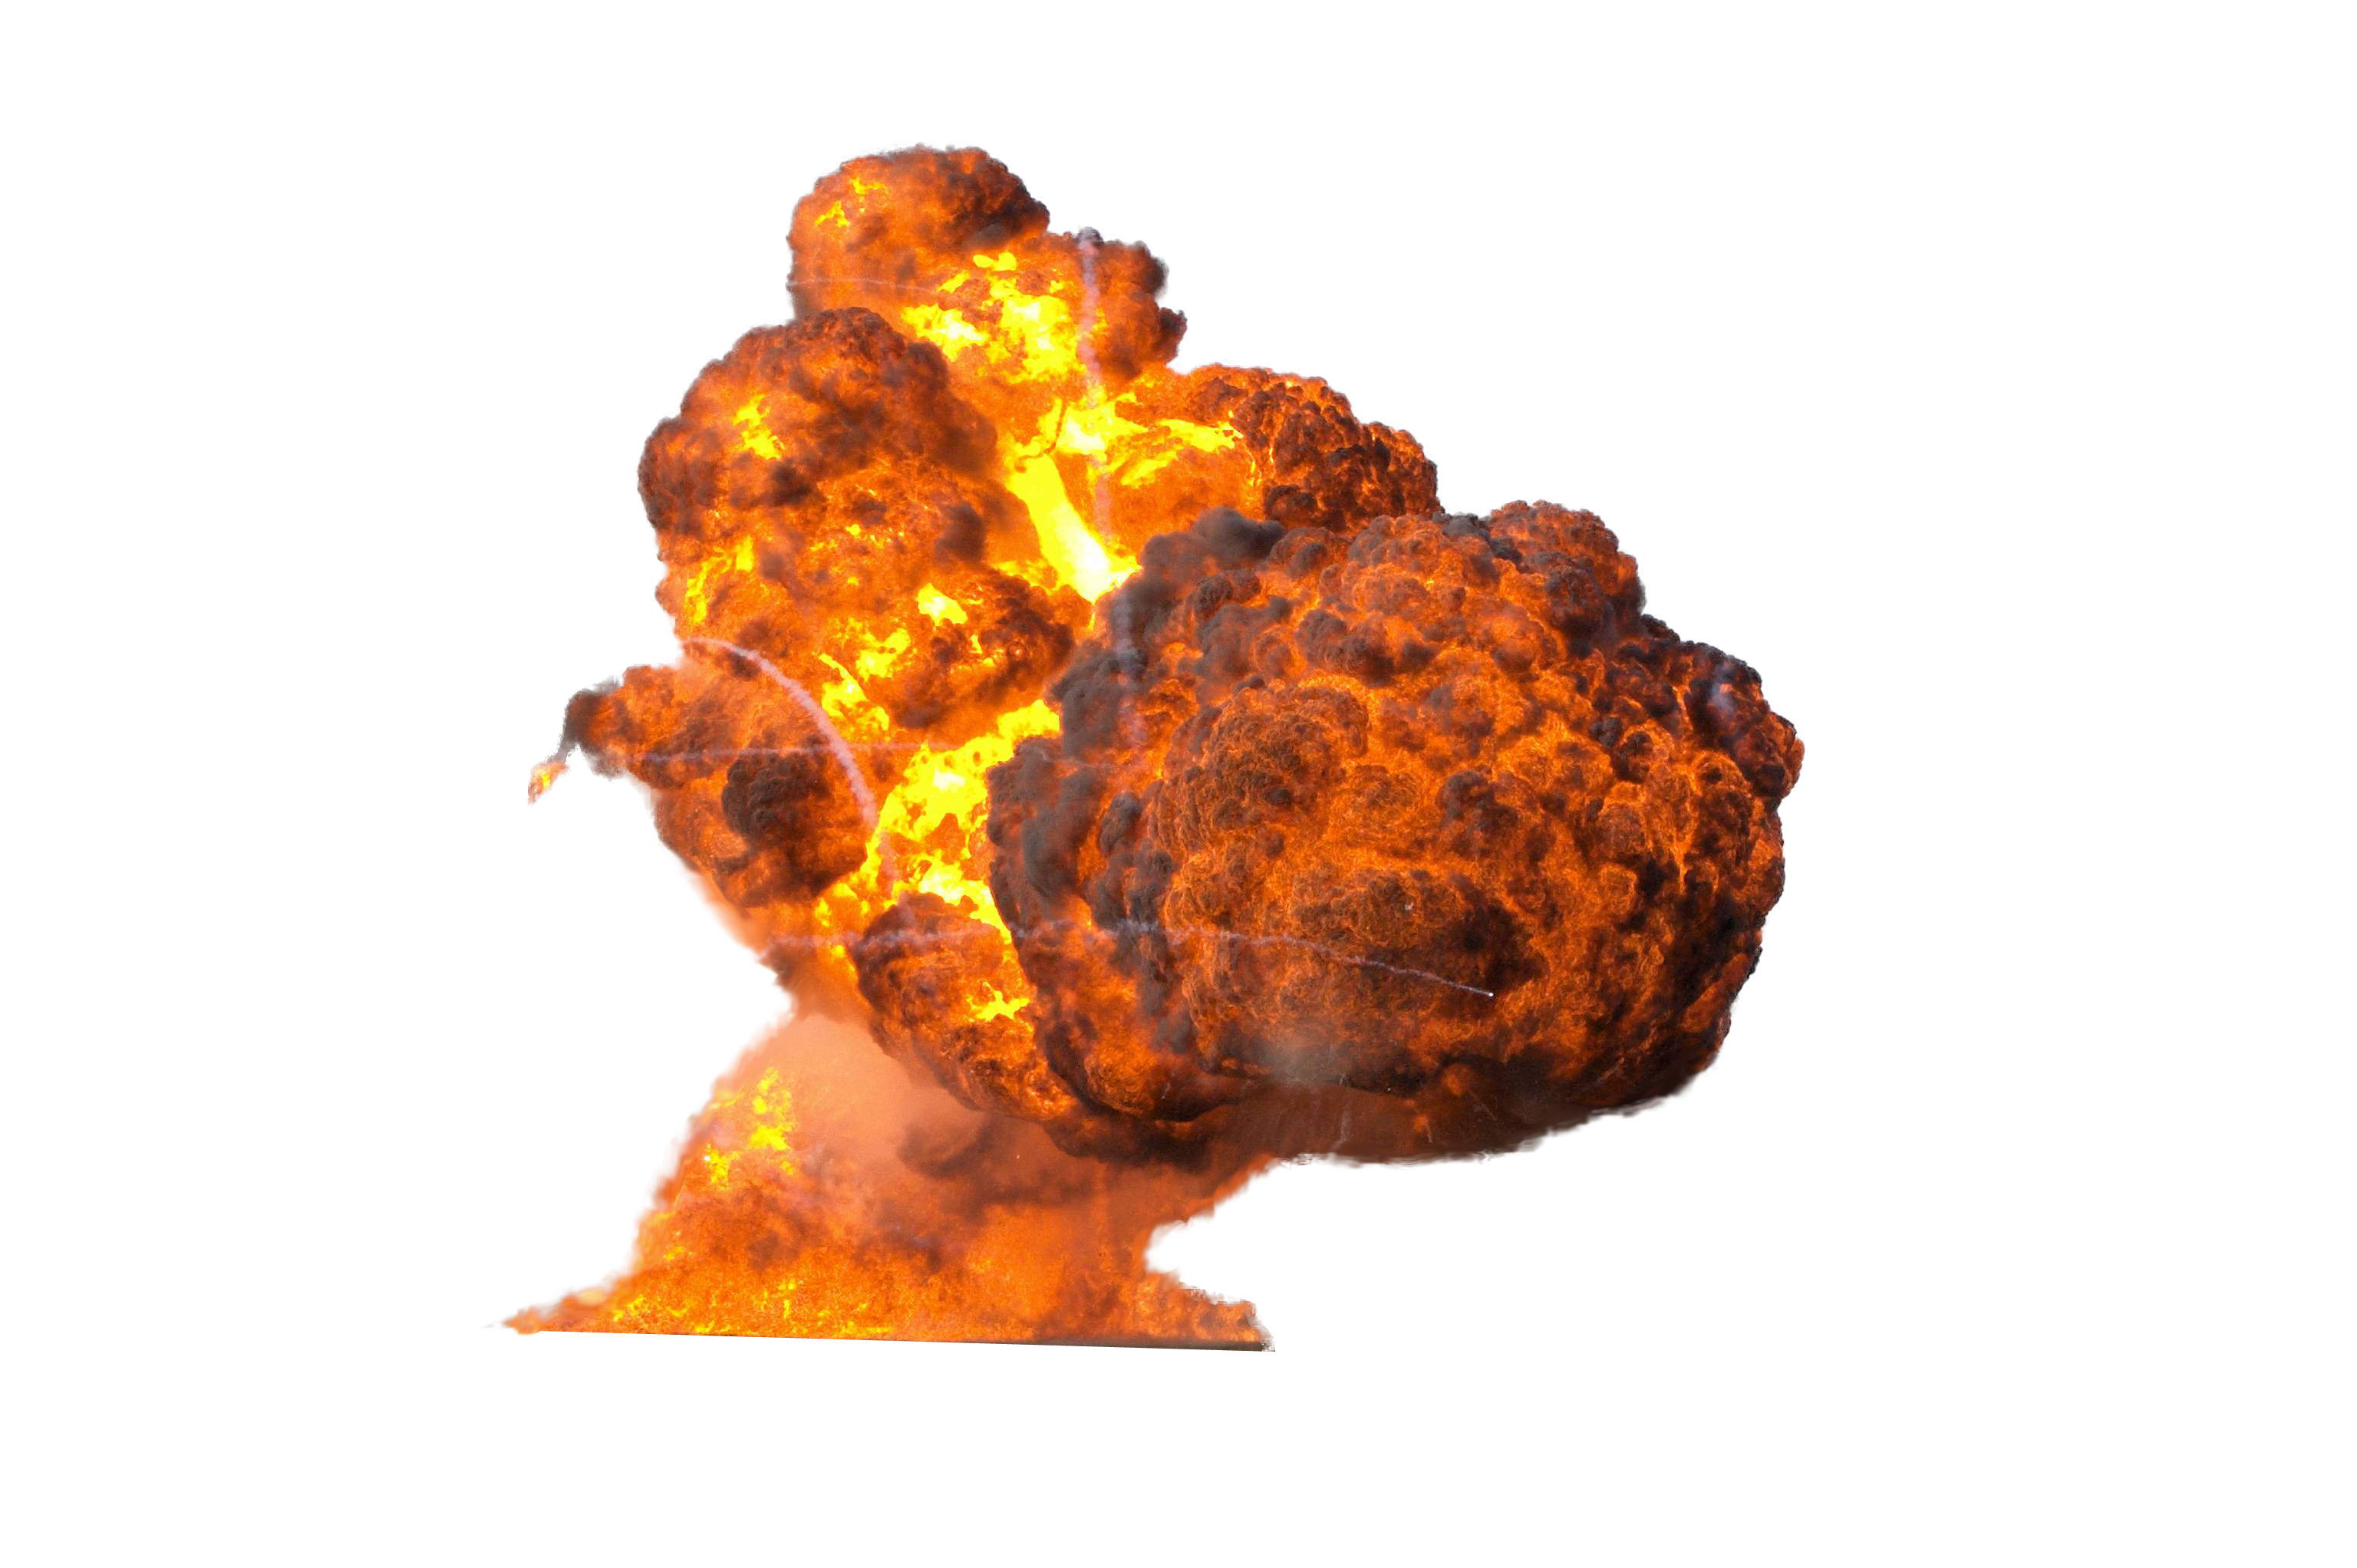 Explosion png. Transparent pictures free icons